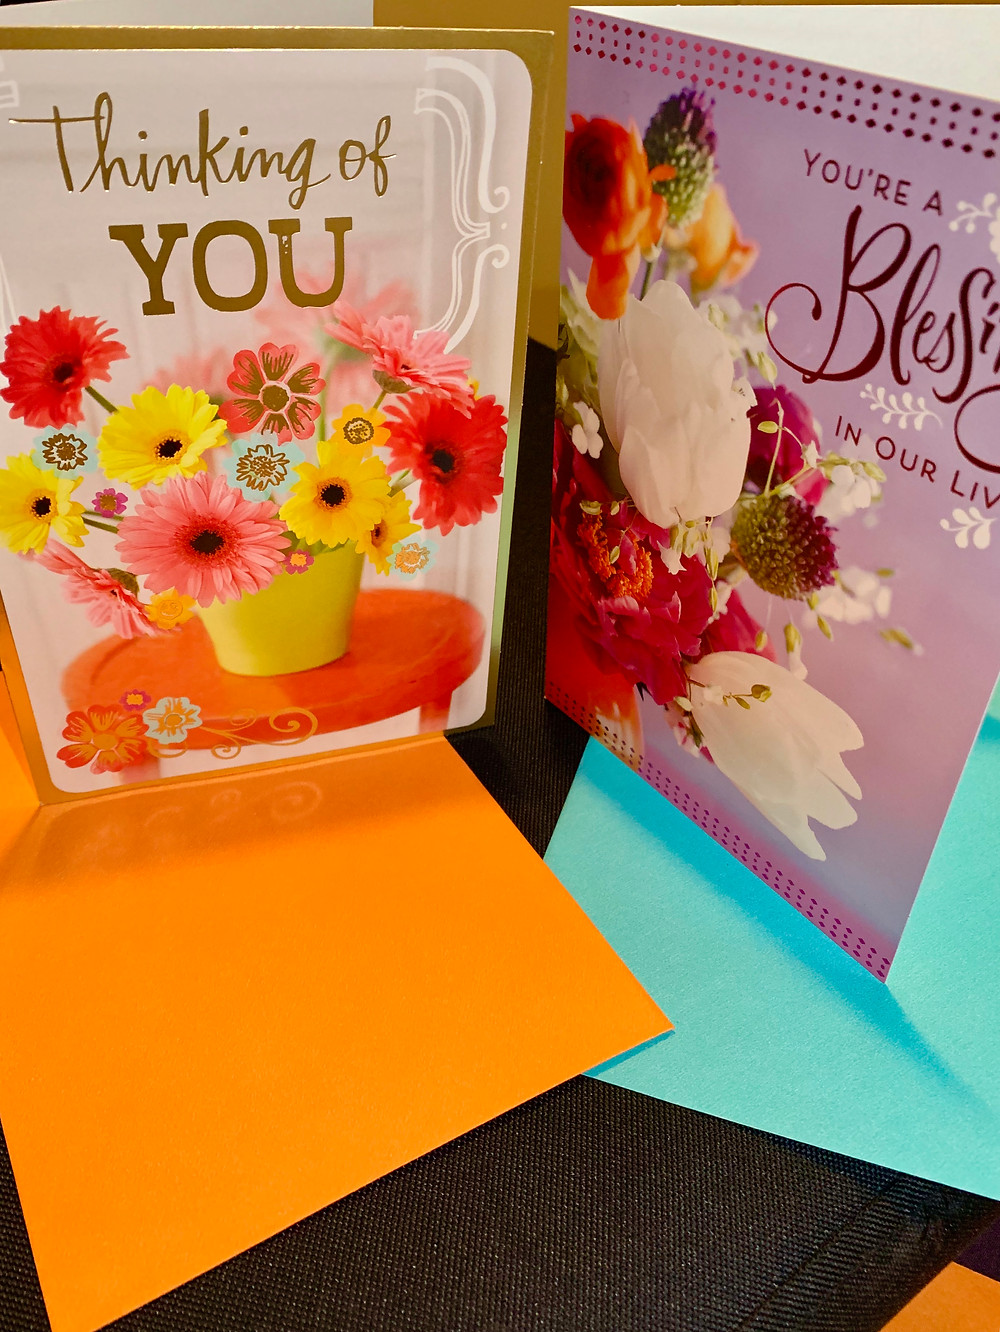 2 greeting cards. 1 says Thinking Of you, 1 says You Are A Blessing In Our Life.